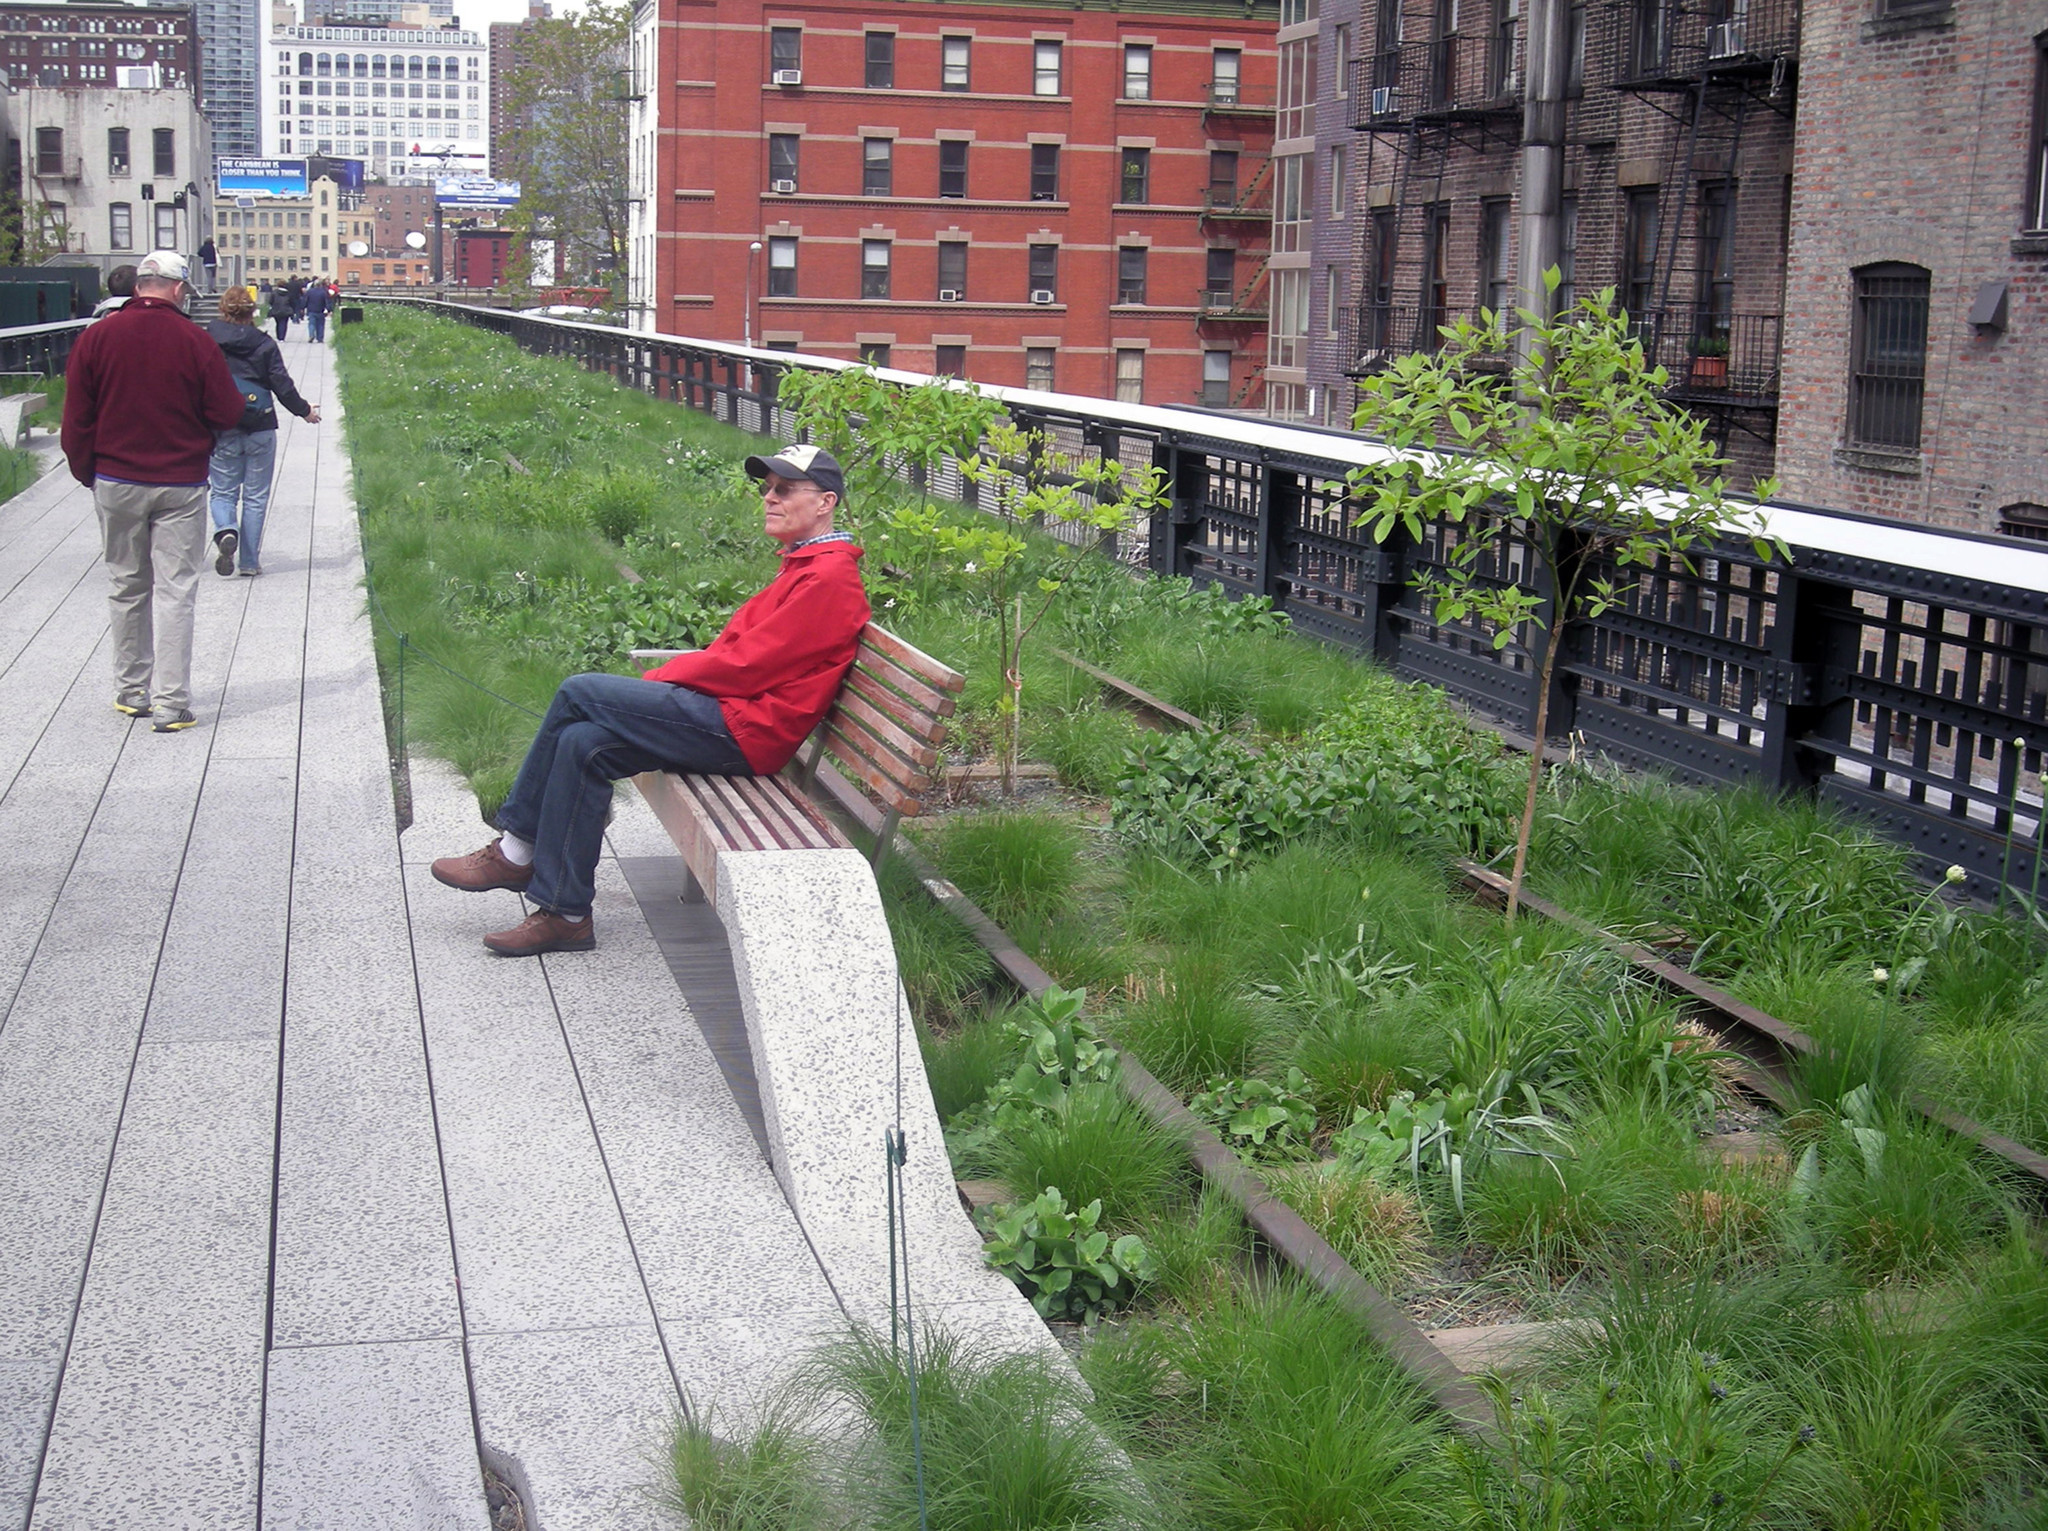 Pictures: High Line Trail in New York City - High Line Trail in New York City